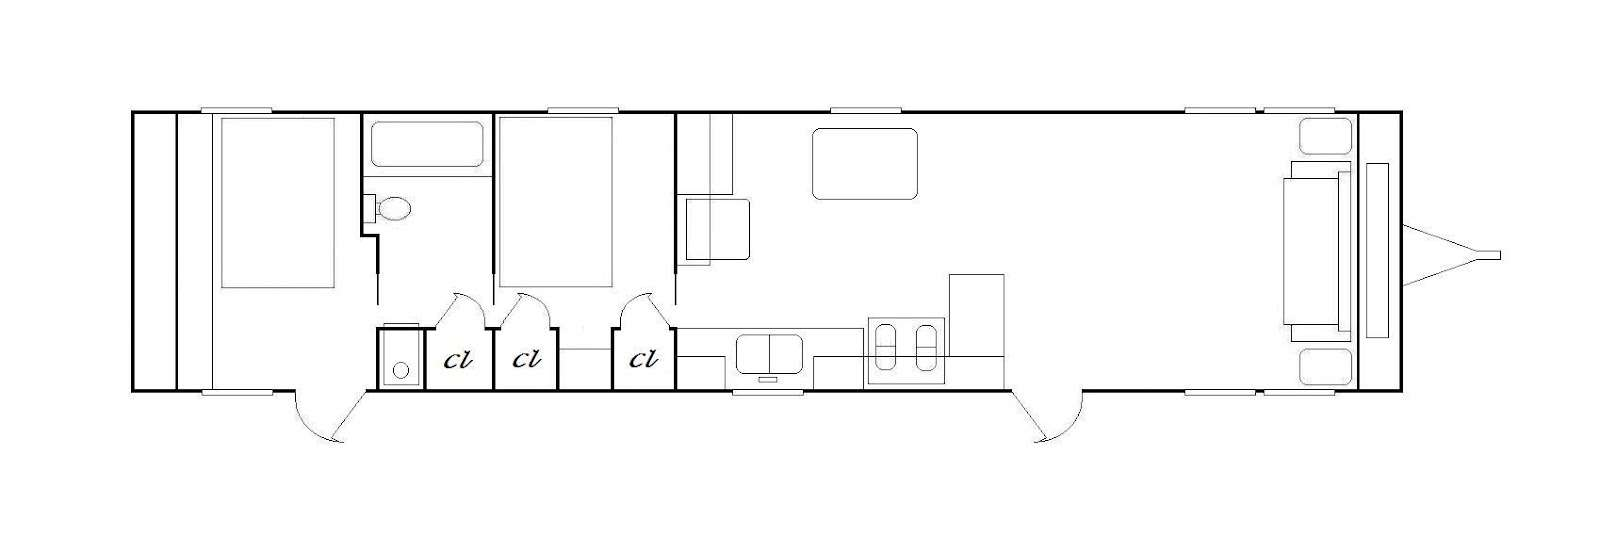 Mobile Home Floor Plans Bedroom Plan Shows